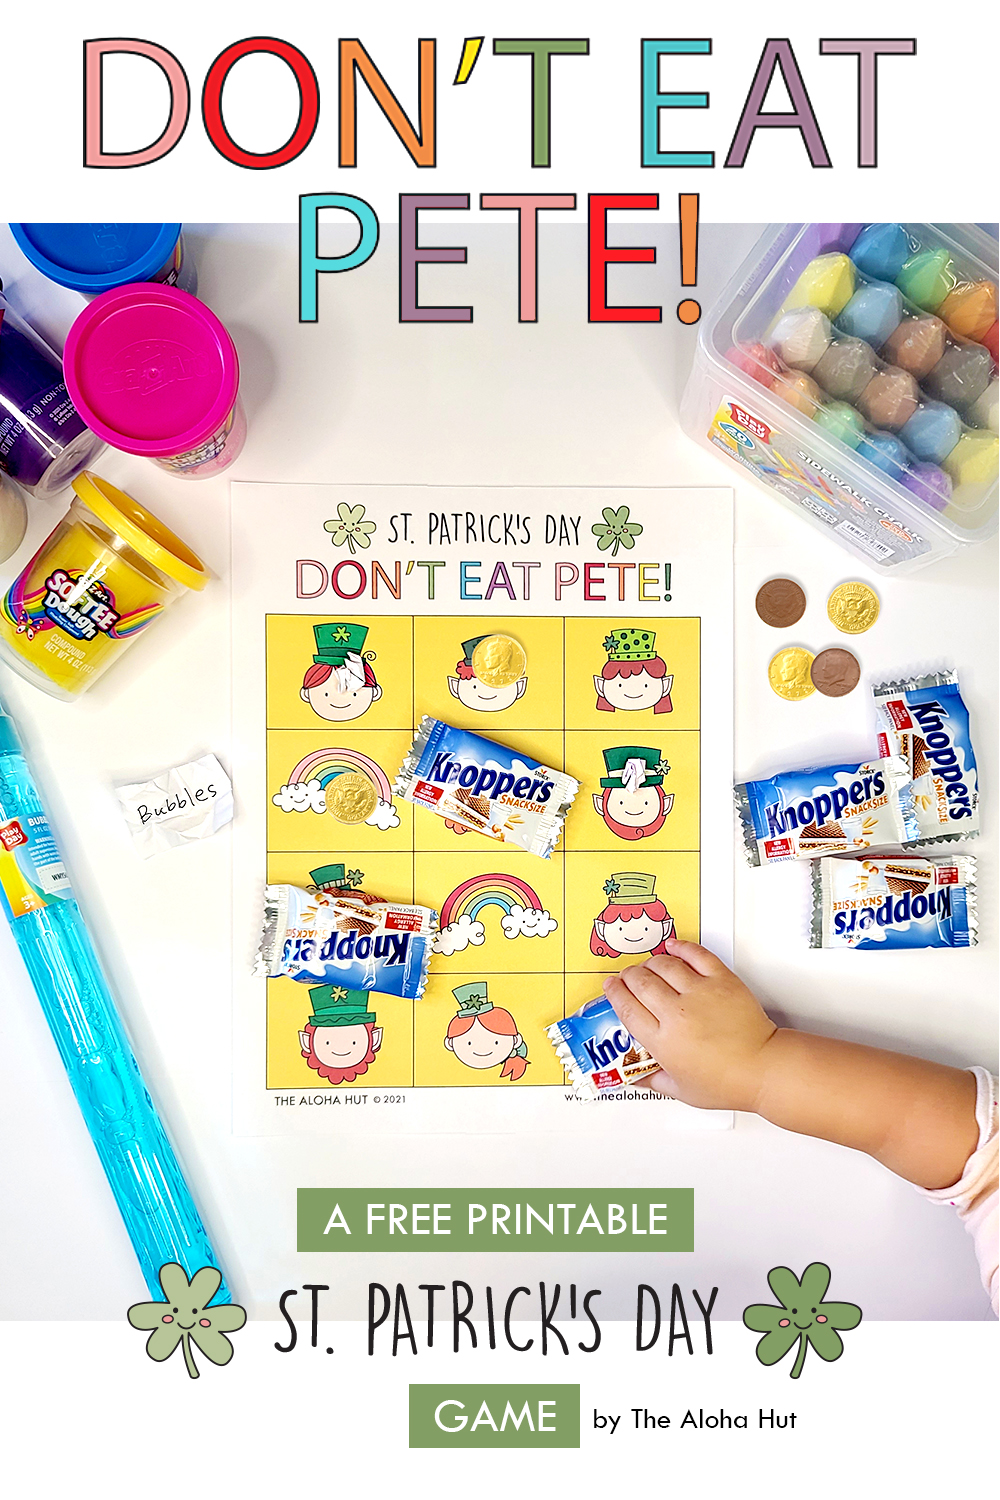 Free Printable St Patrick's Day Game Don't Eat Pete by the Aloha Hut